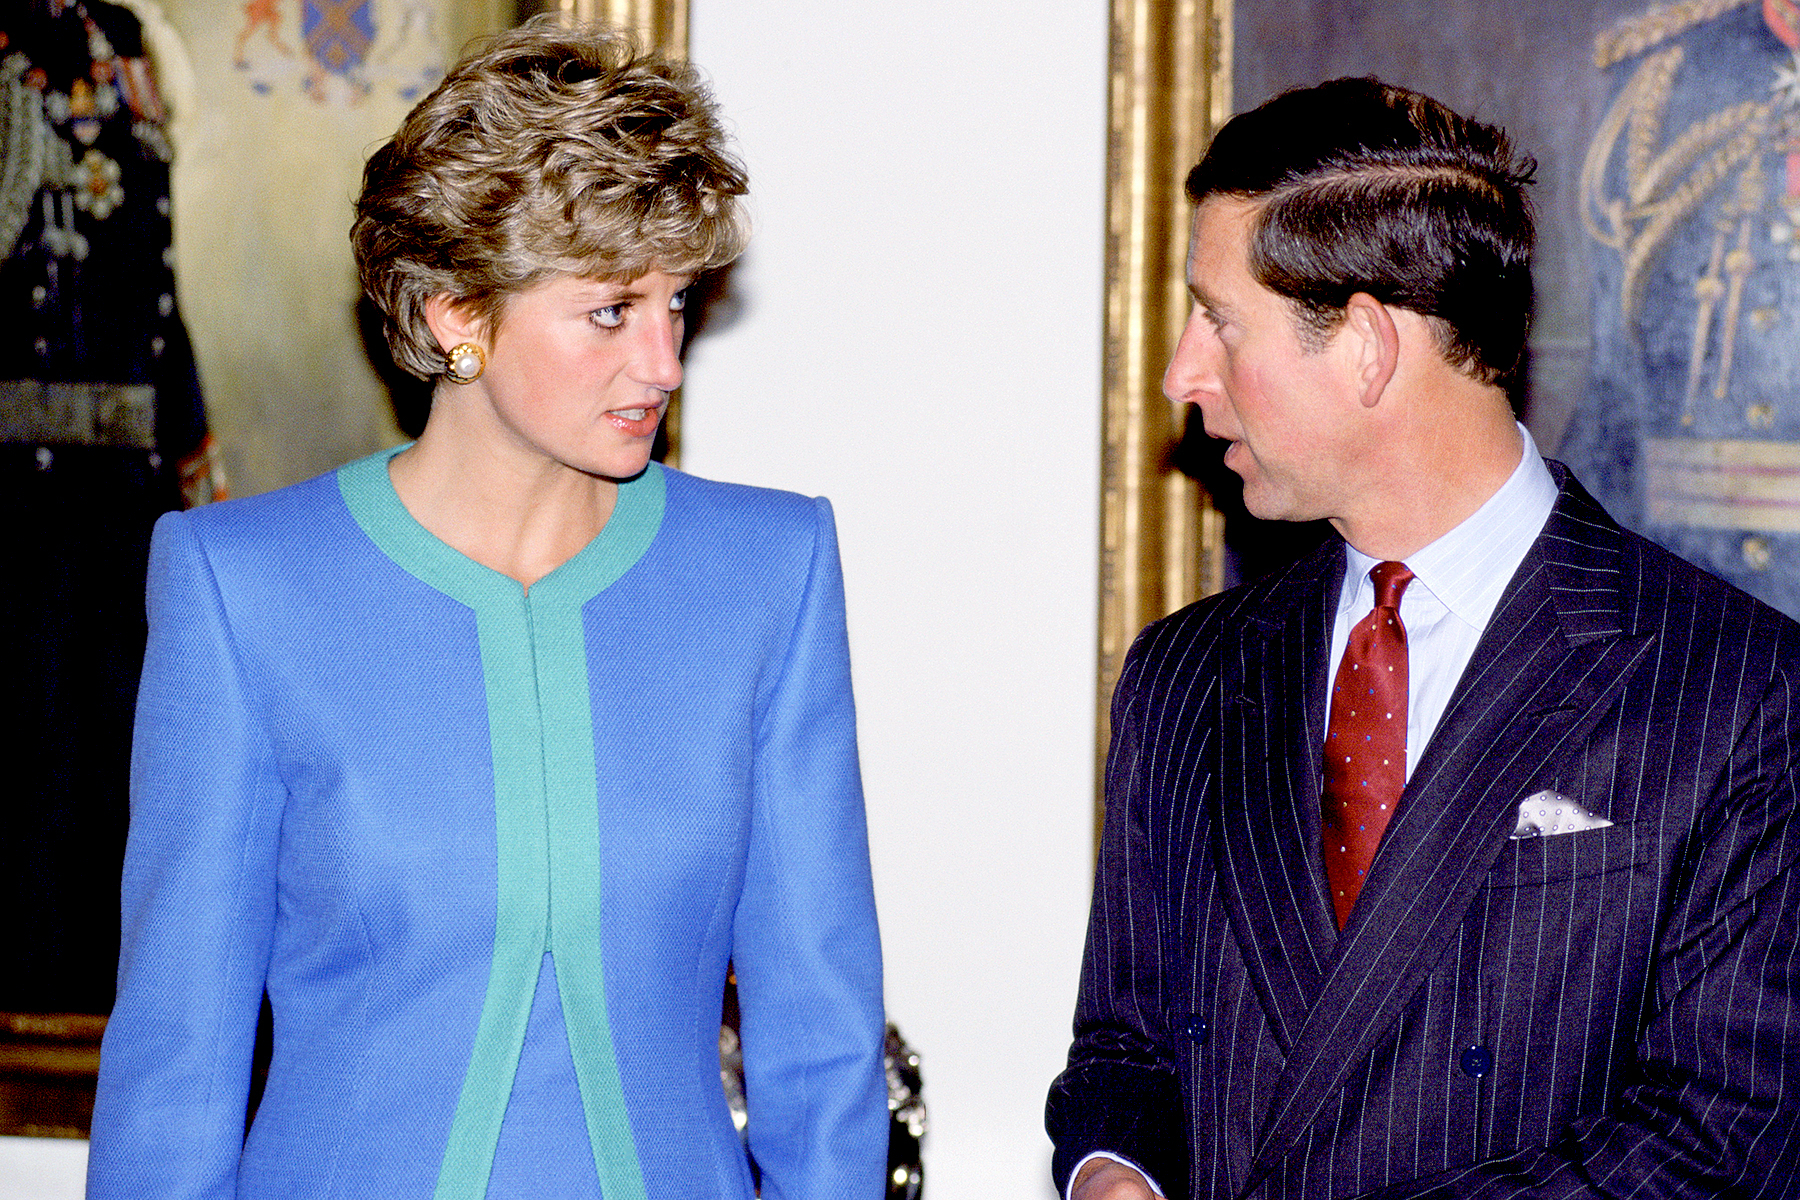 Princess Diana and Prince Charles during a visit to Ottawa, Canada in 1991.